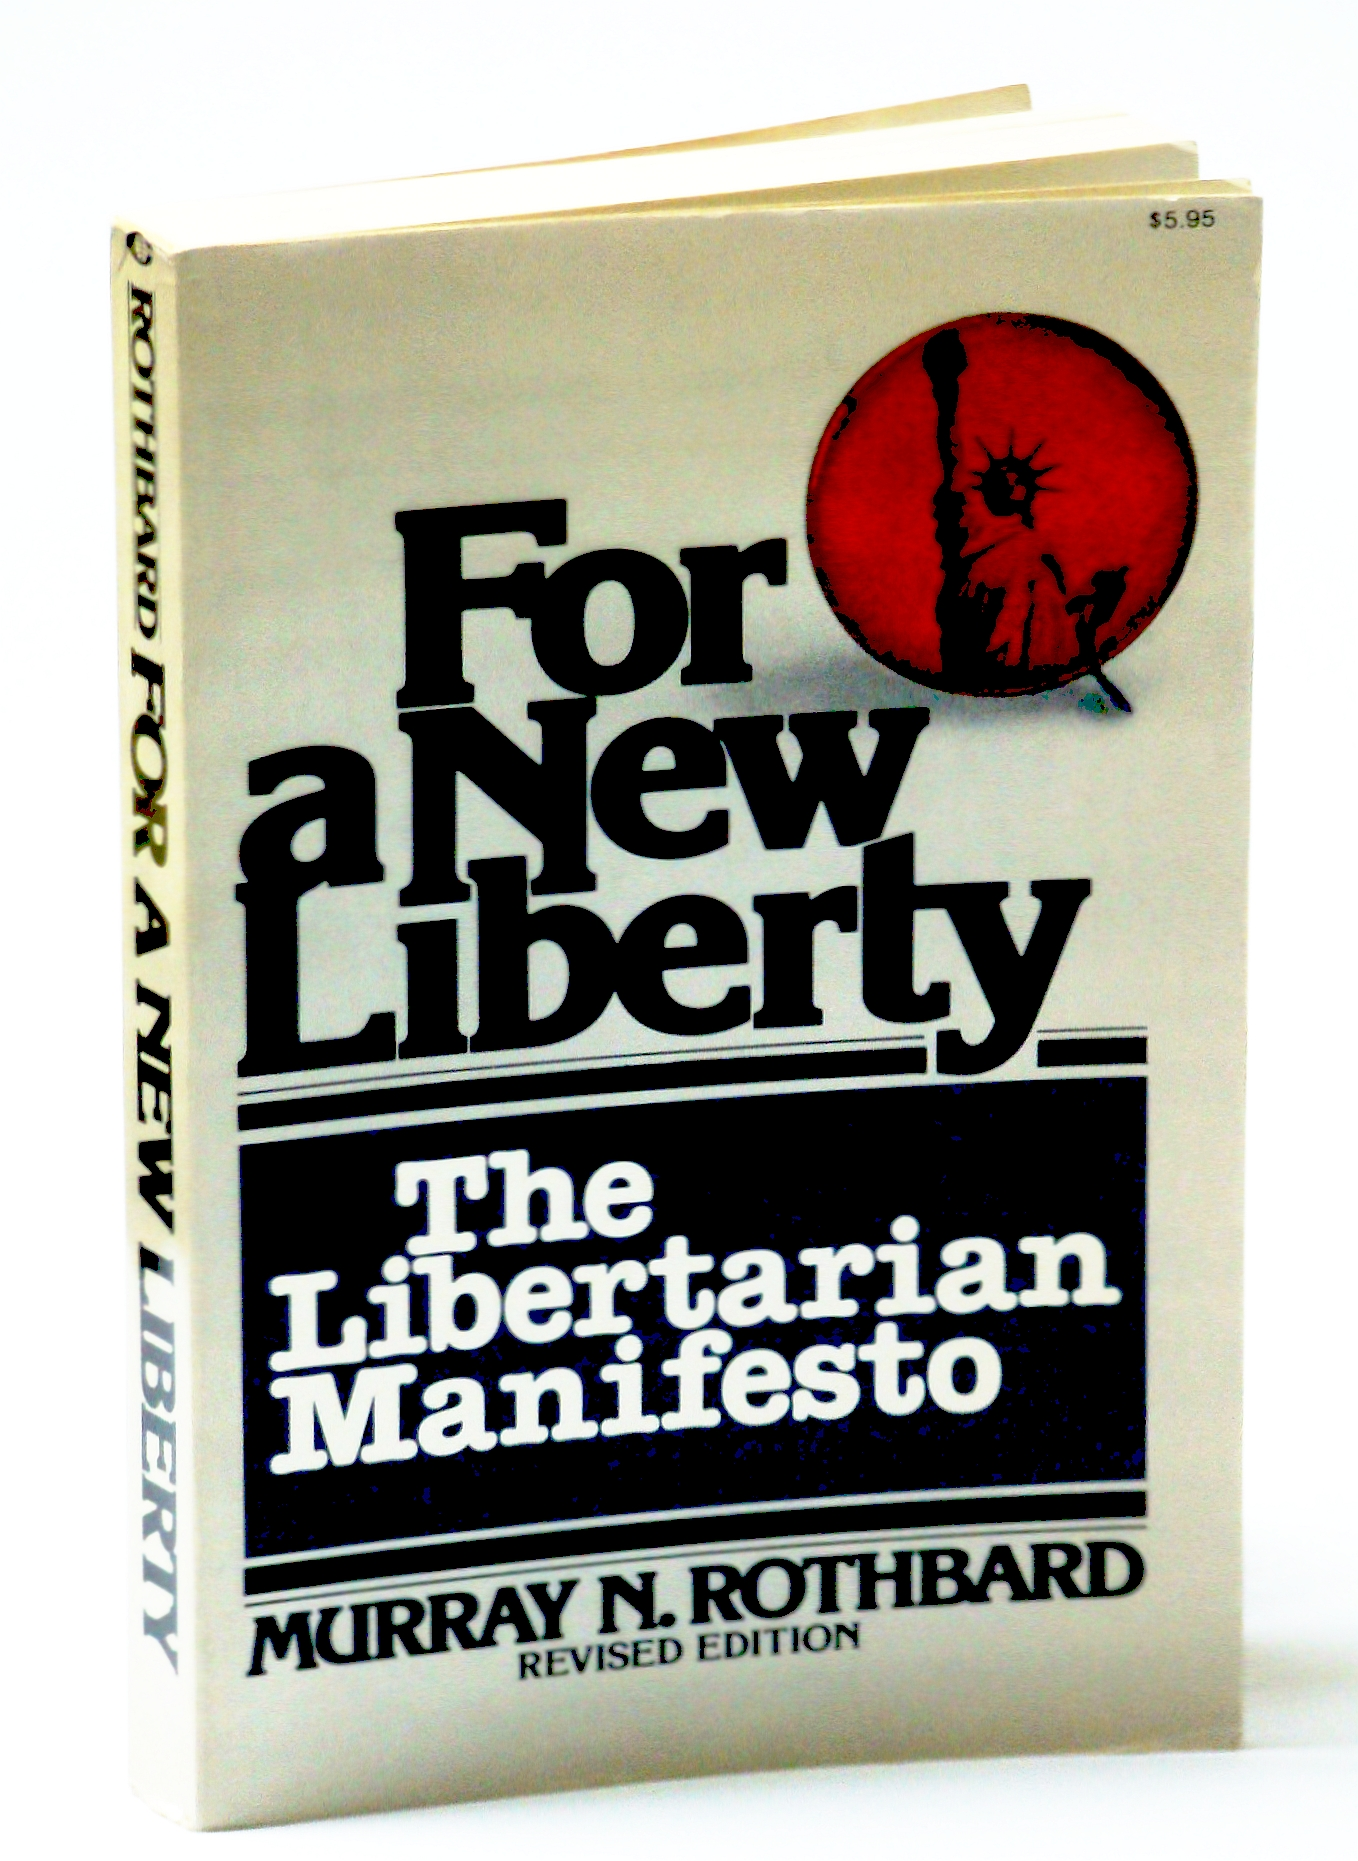 Image for For a New Liberty: The Libertarian Manifesto